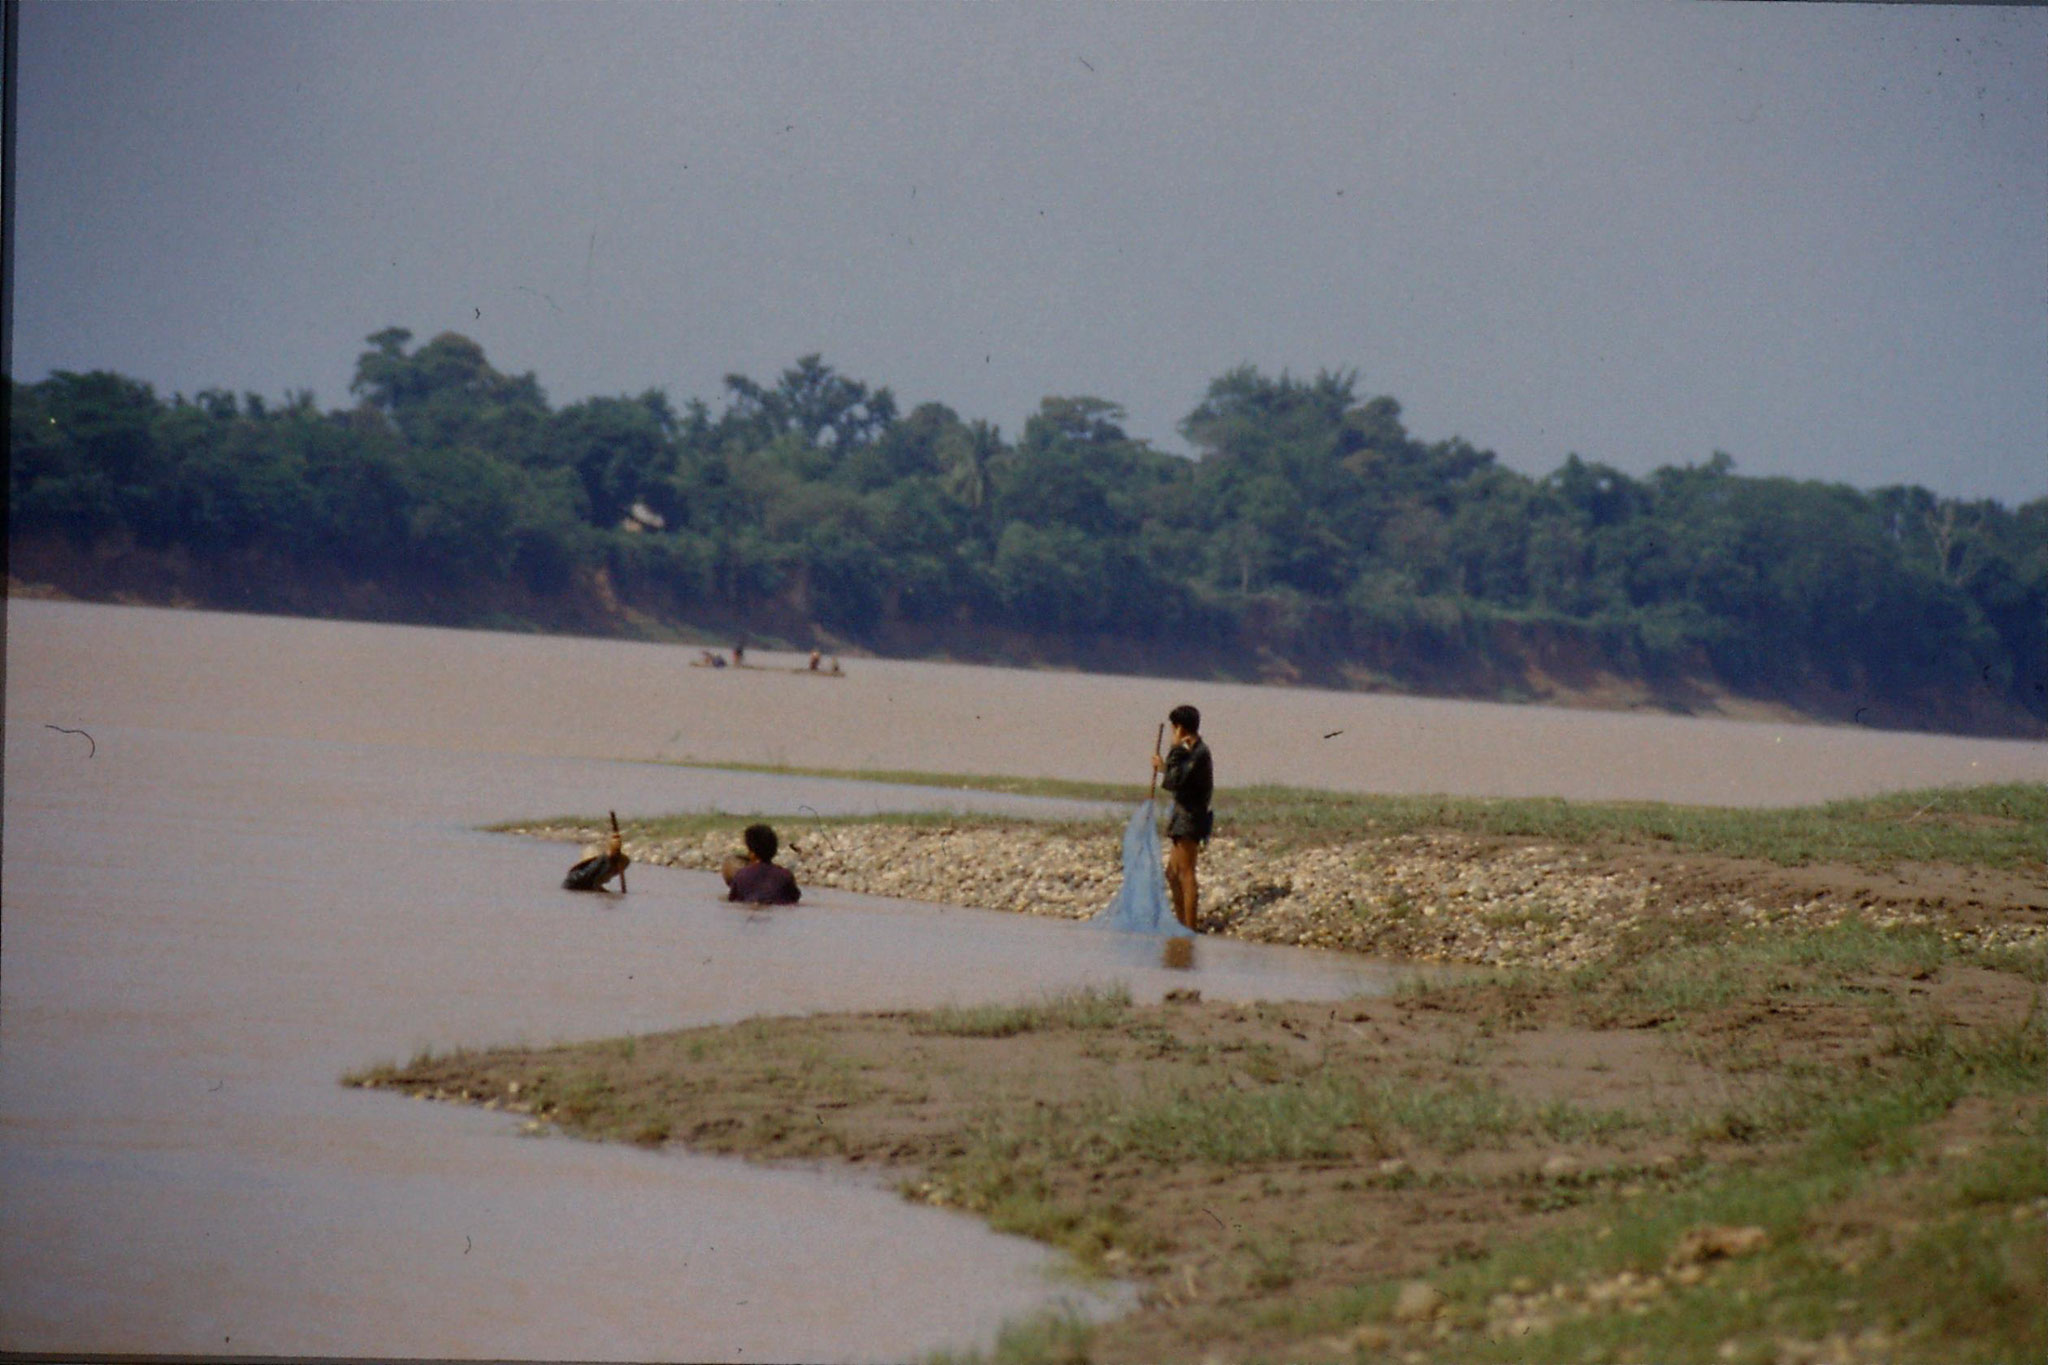 30/5/1990: 26: east of Nong Khai, Mekong river